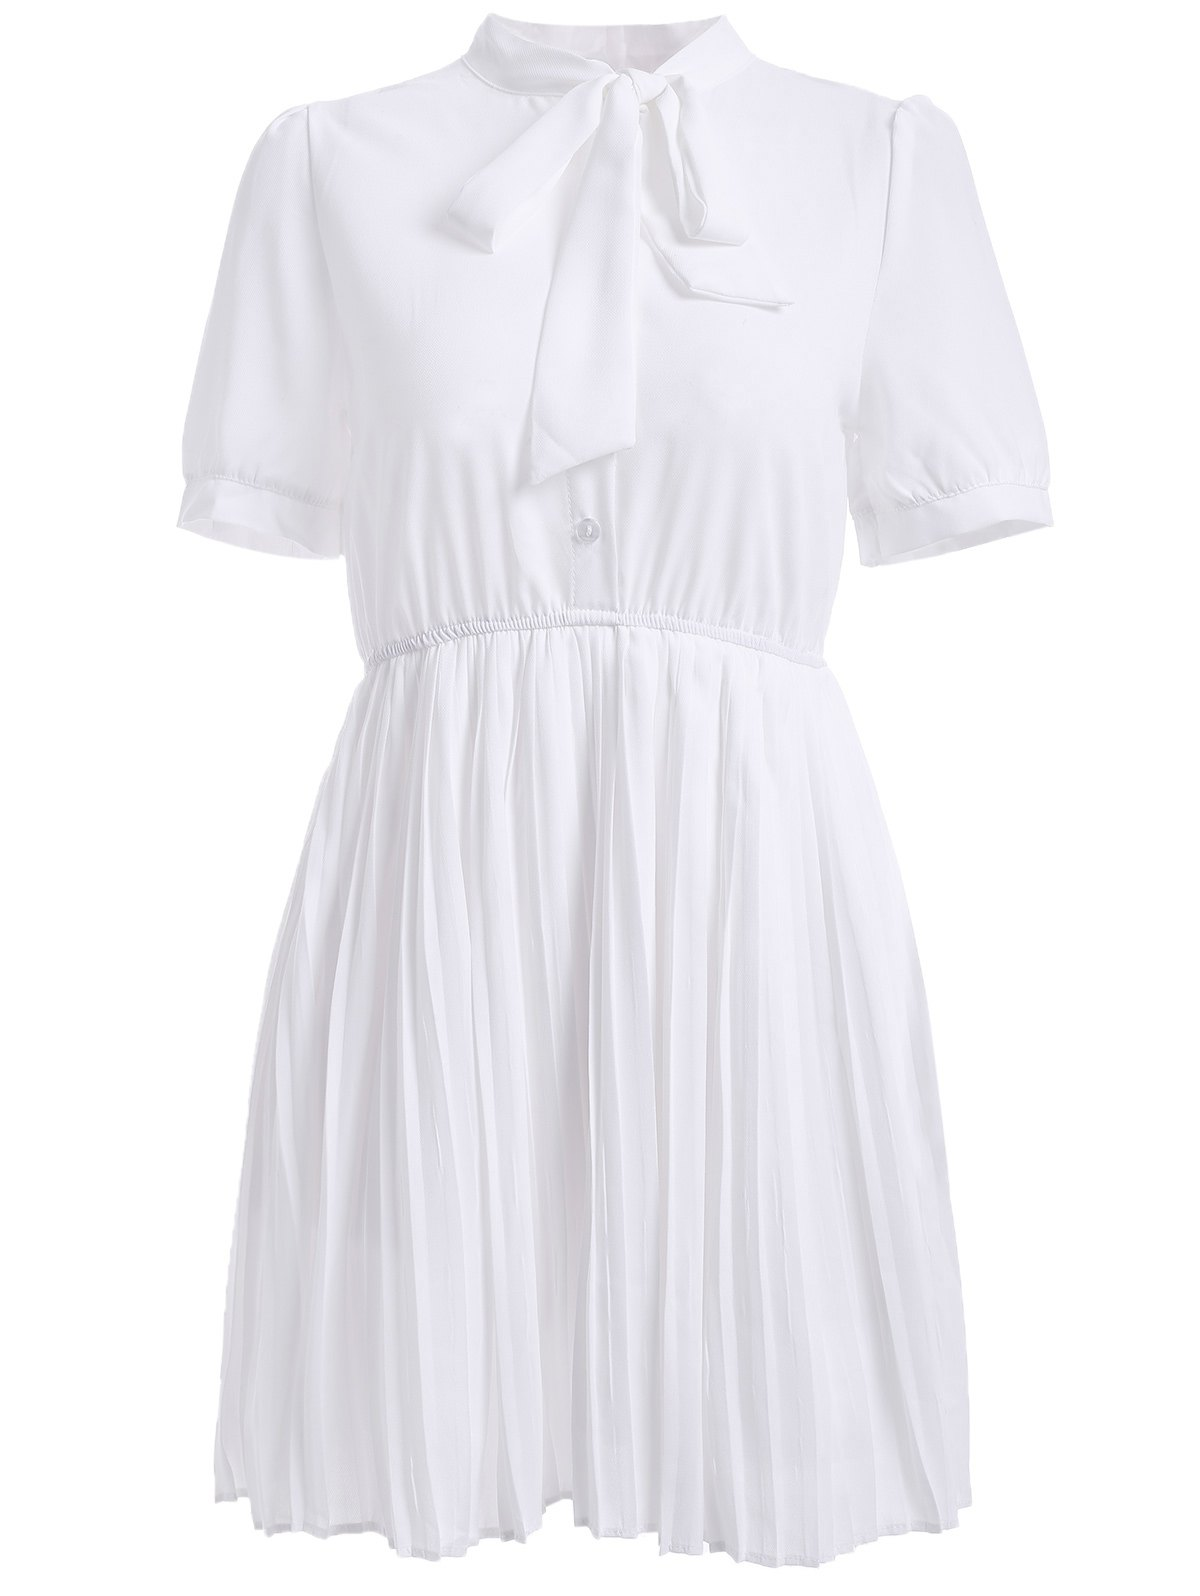 Casual Women's Solid Color Stand Neck Tie Short Sleeves Chiffon Pleated Dress - WHITE ONE SIZE(FIT SIZE XS TO M)